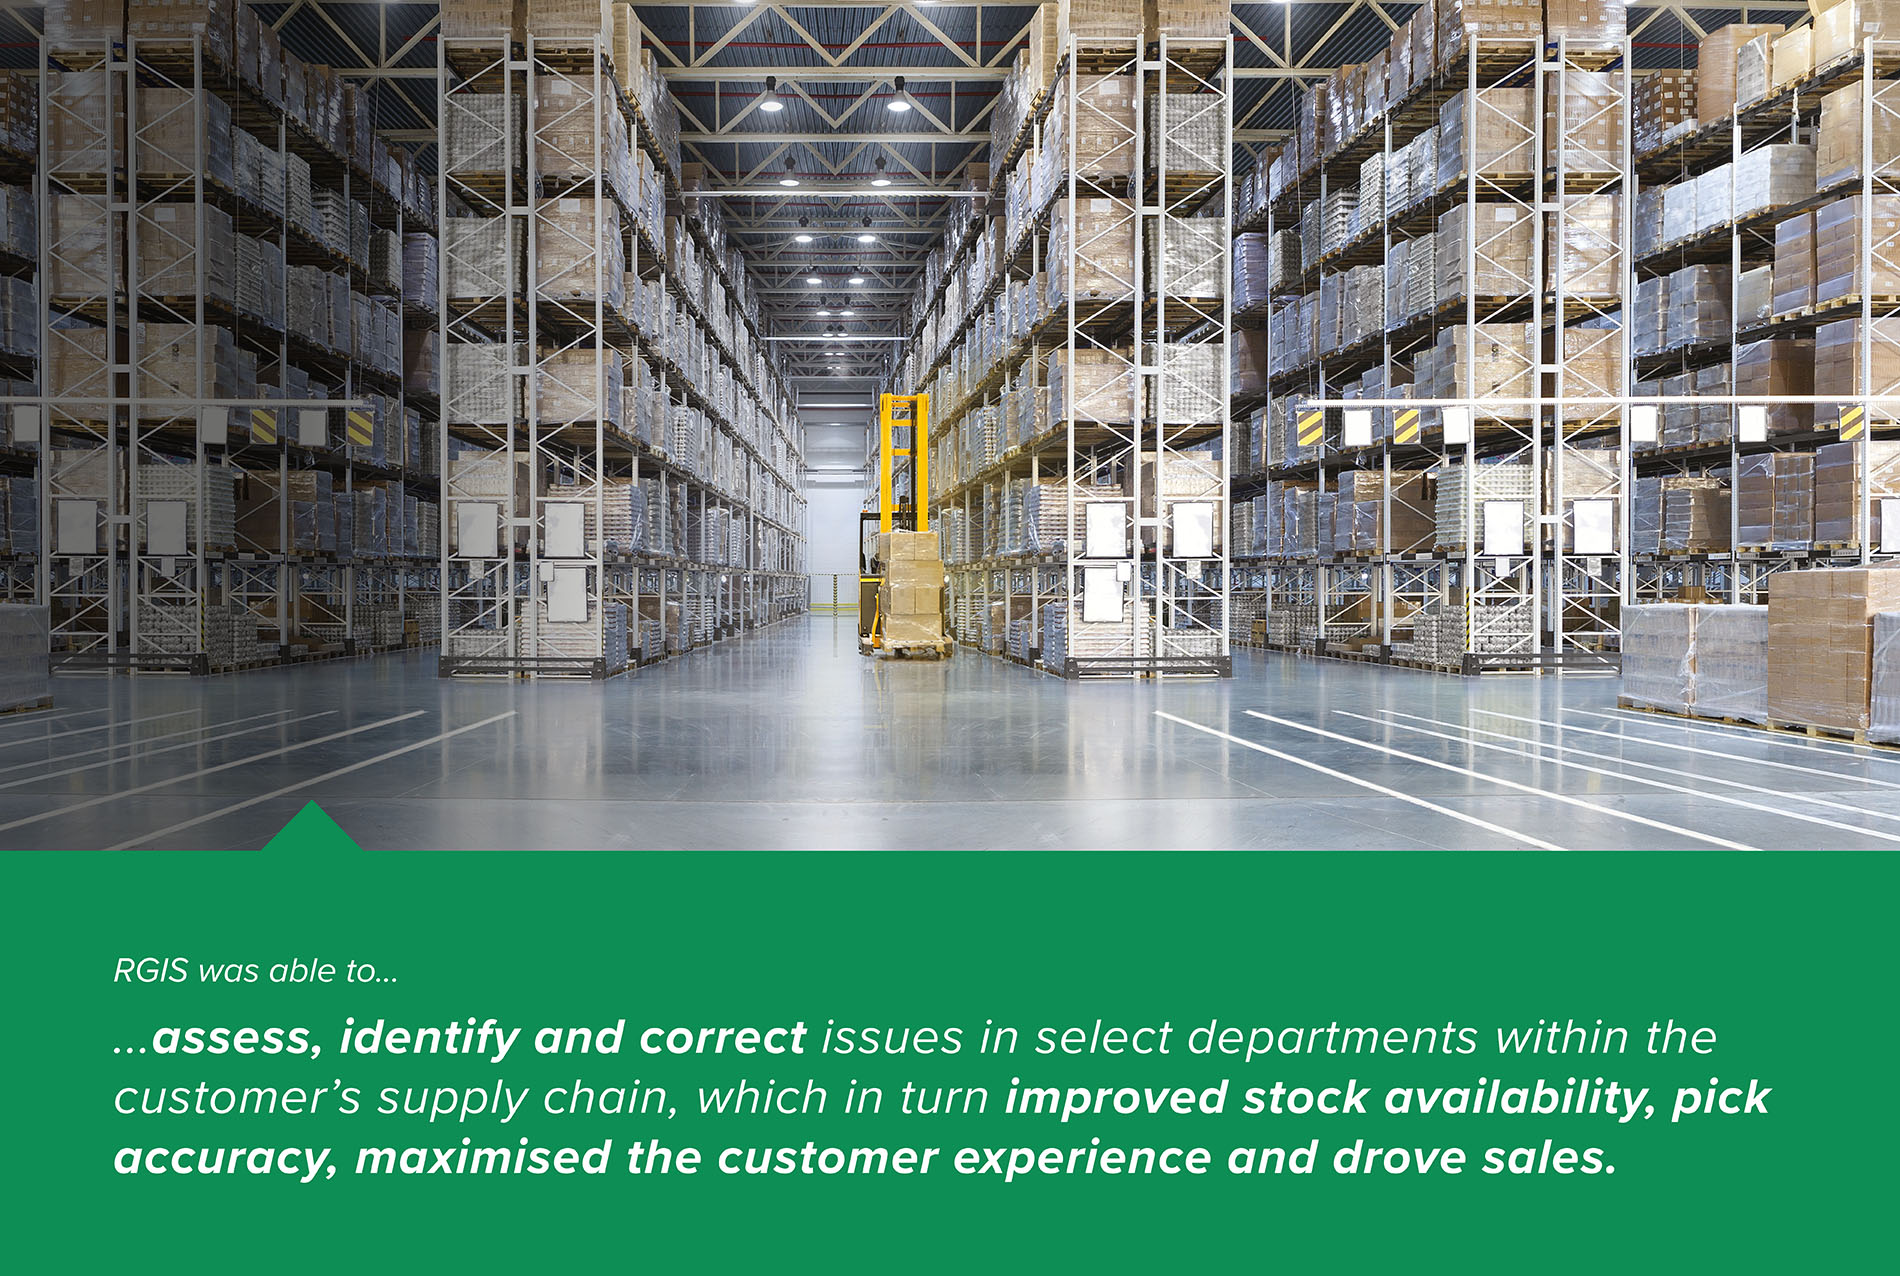 RGIS case study of Physical Inventory Solutions for Tesco